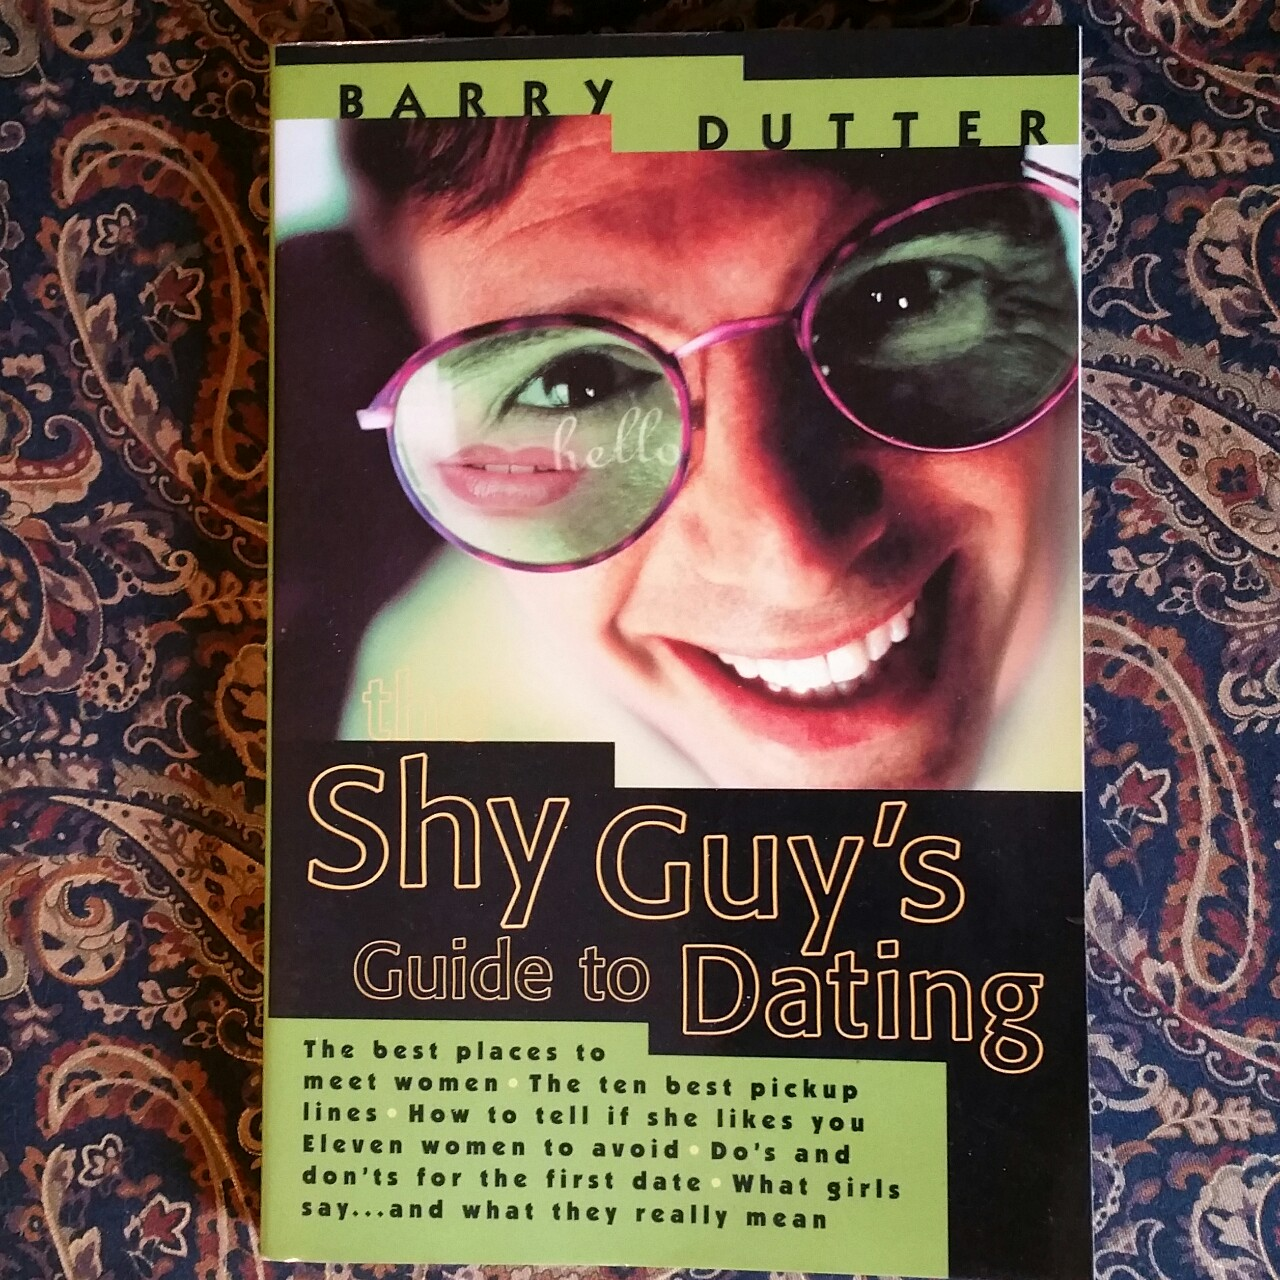 Shy Guy's Guide to Dating by Barry Dutter  The best    - Depop